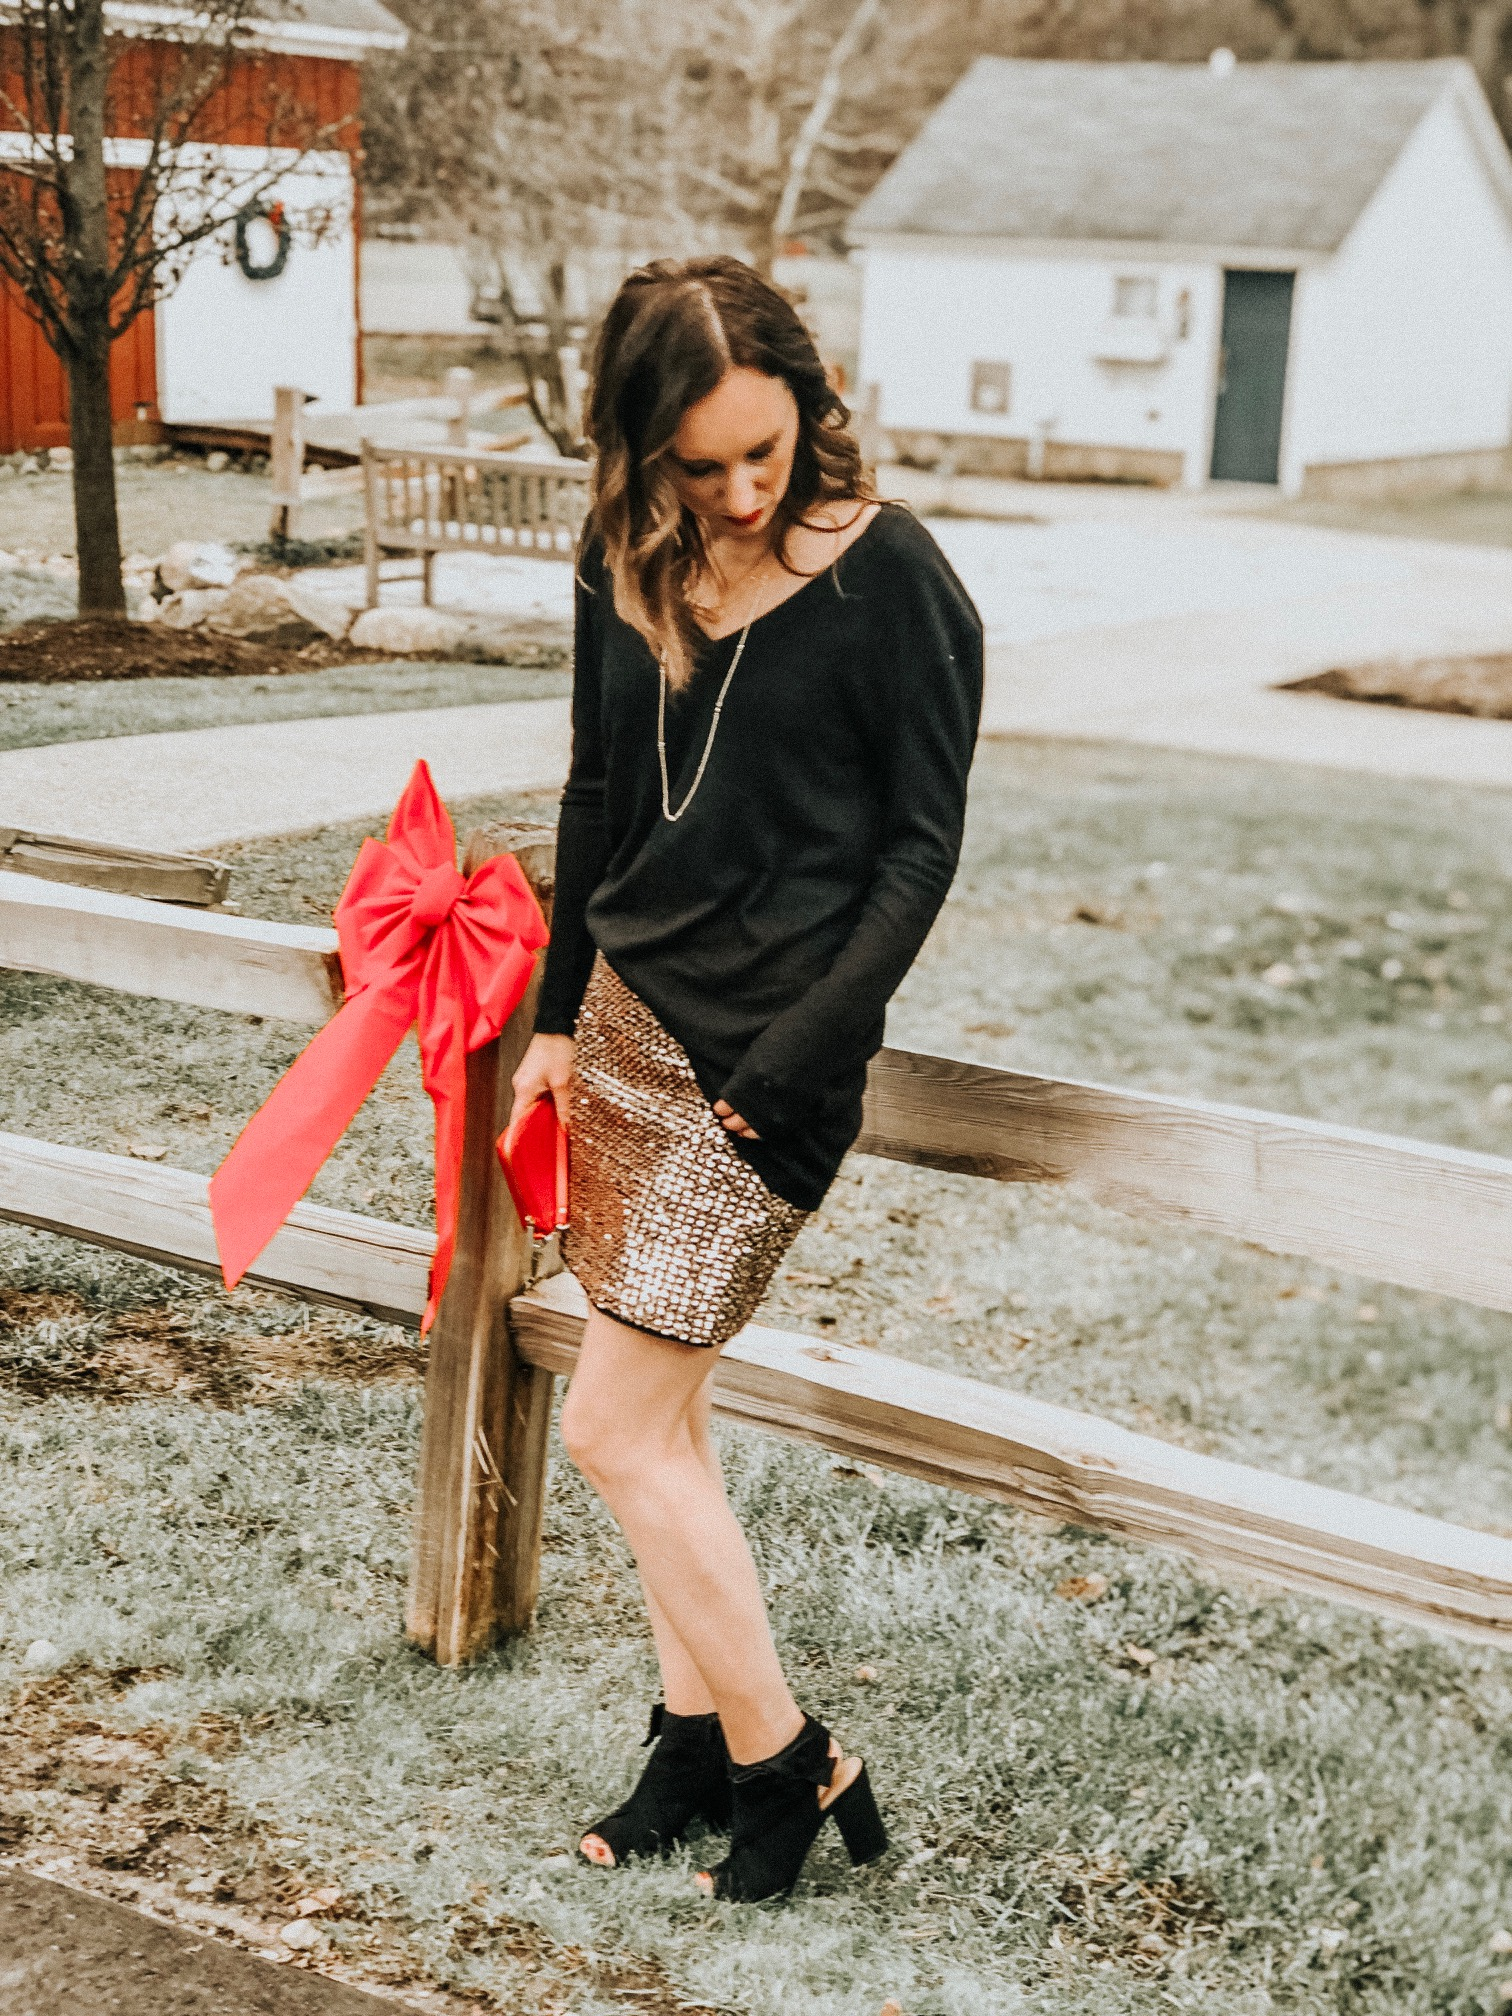 Cute Party Outfit Ideas | Daily Splendor Life and Style Blog | Holiday Party, NYE Party, Going Out, Sequins #partyoutfit #sequinskirt #christmasparty #nyeoutfit